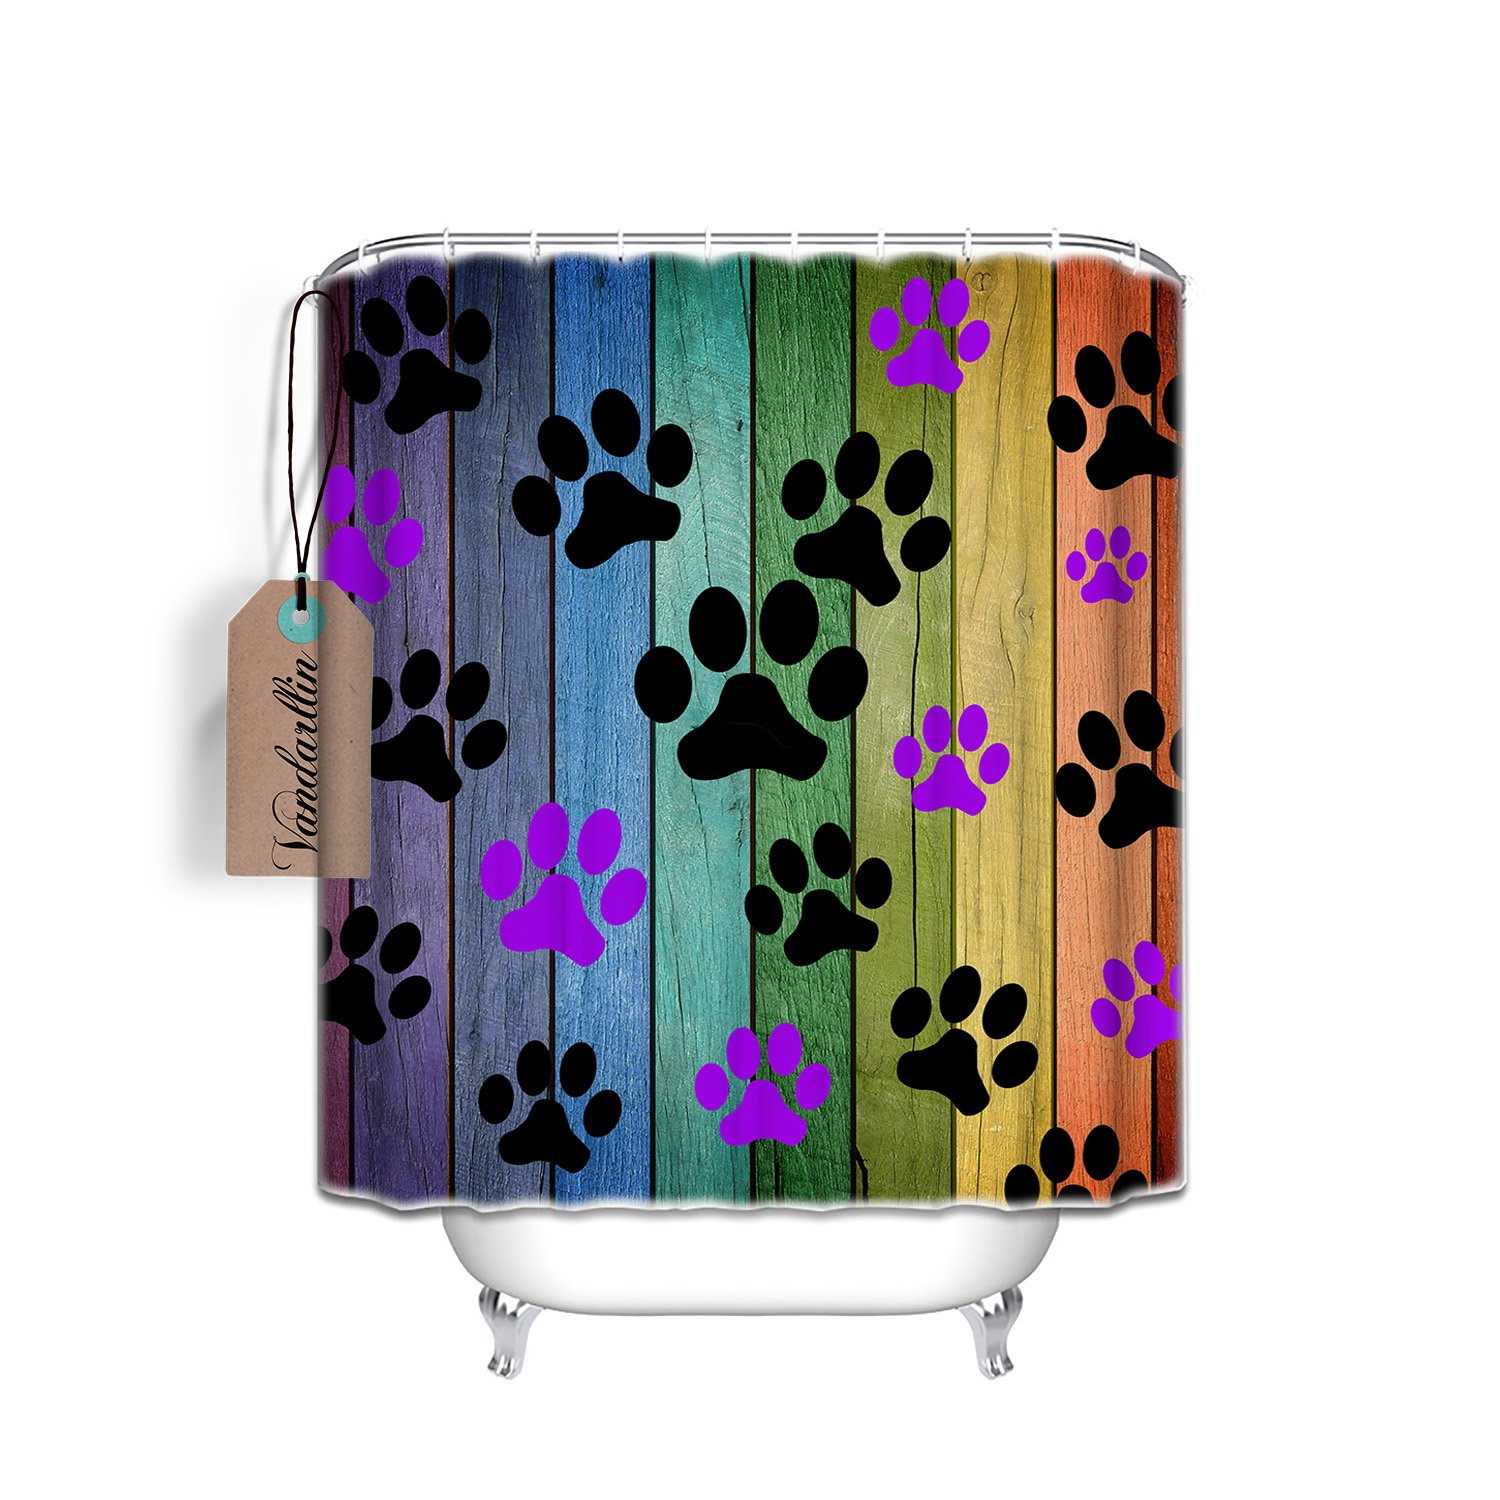 """Vandarllin Dog Paw Prints Rustic Old Barn Wood Bathroom Shower Curtain Set with Hooks 66""""x72"""", Waterproof Fabric Polyester, Multi Color Home Decoration"""